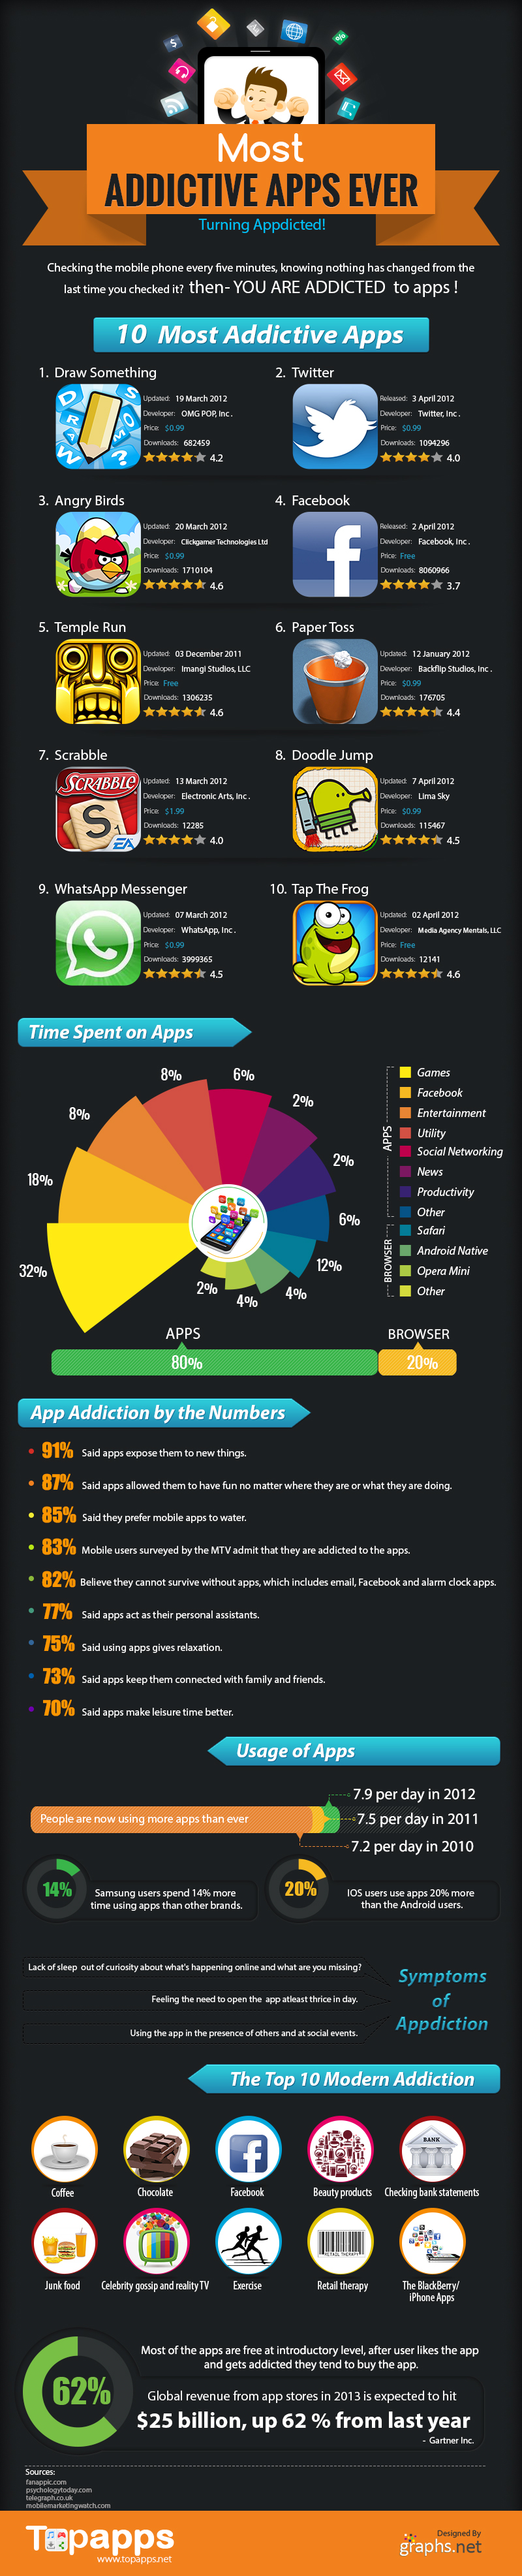 Most Addictive Apps (1)